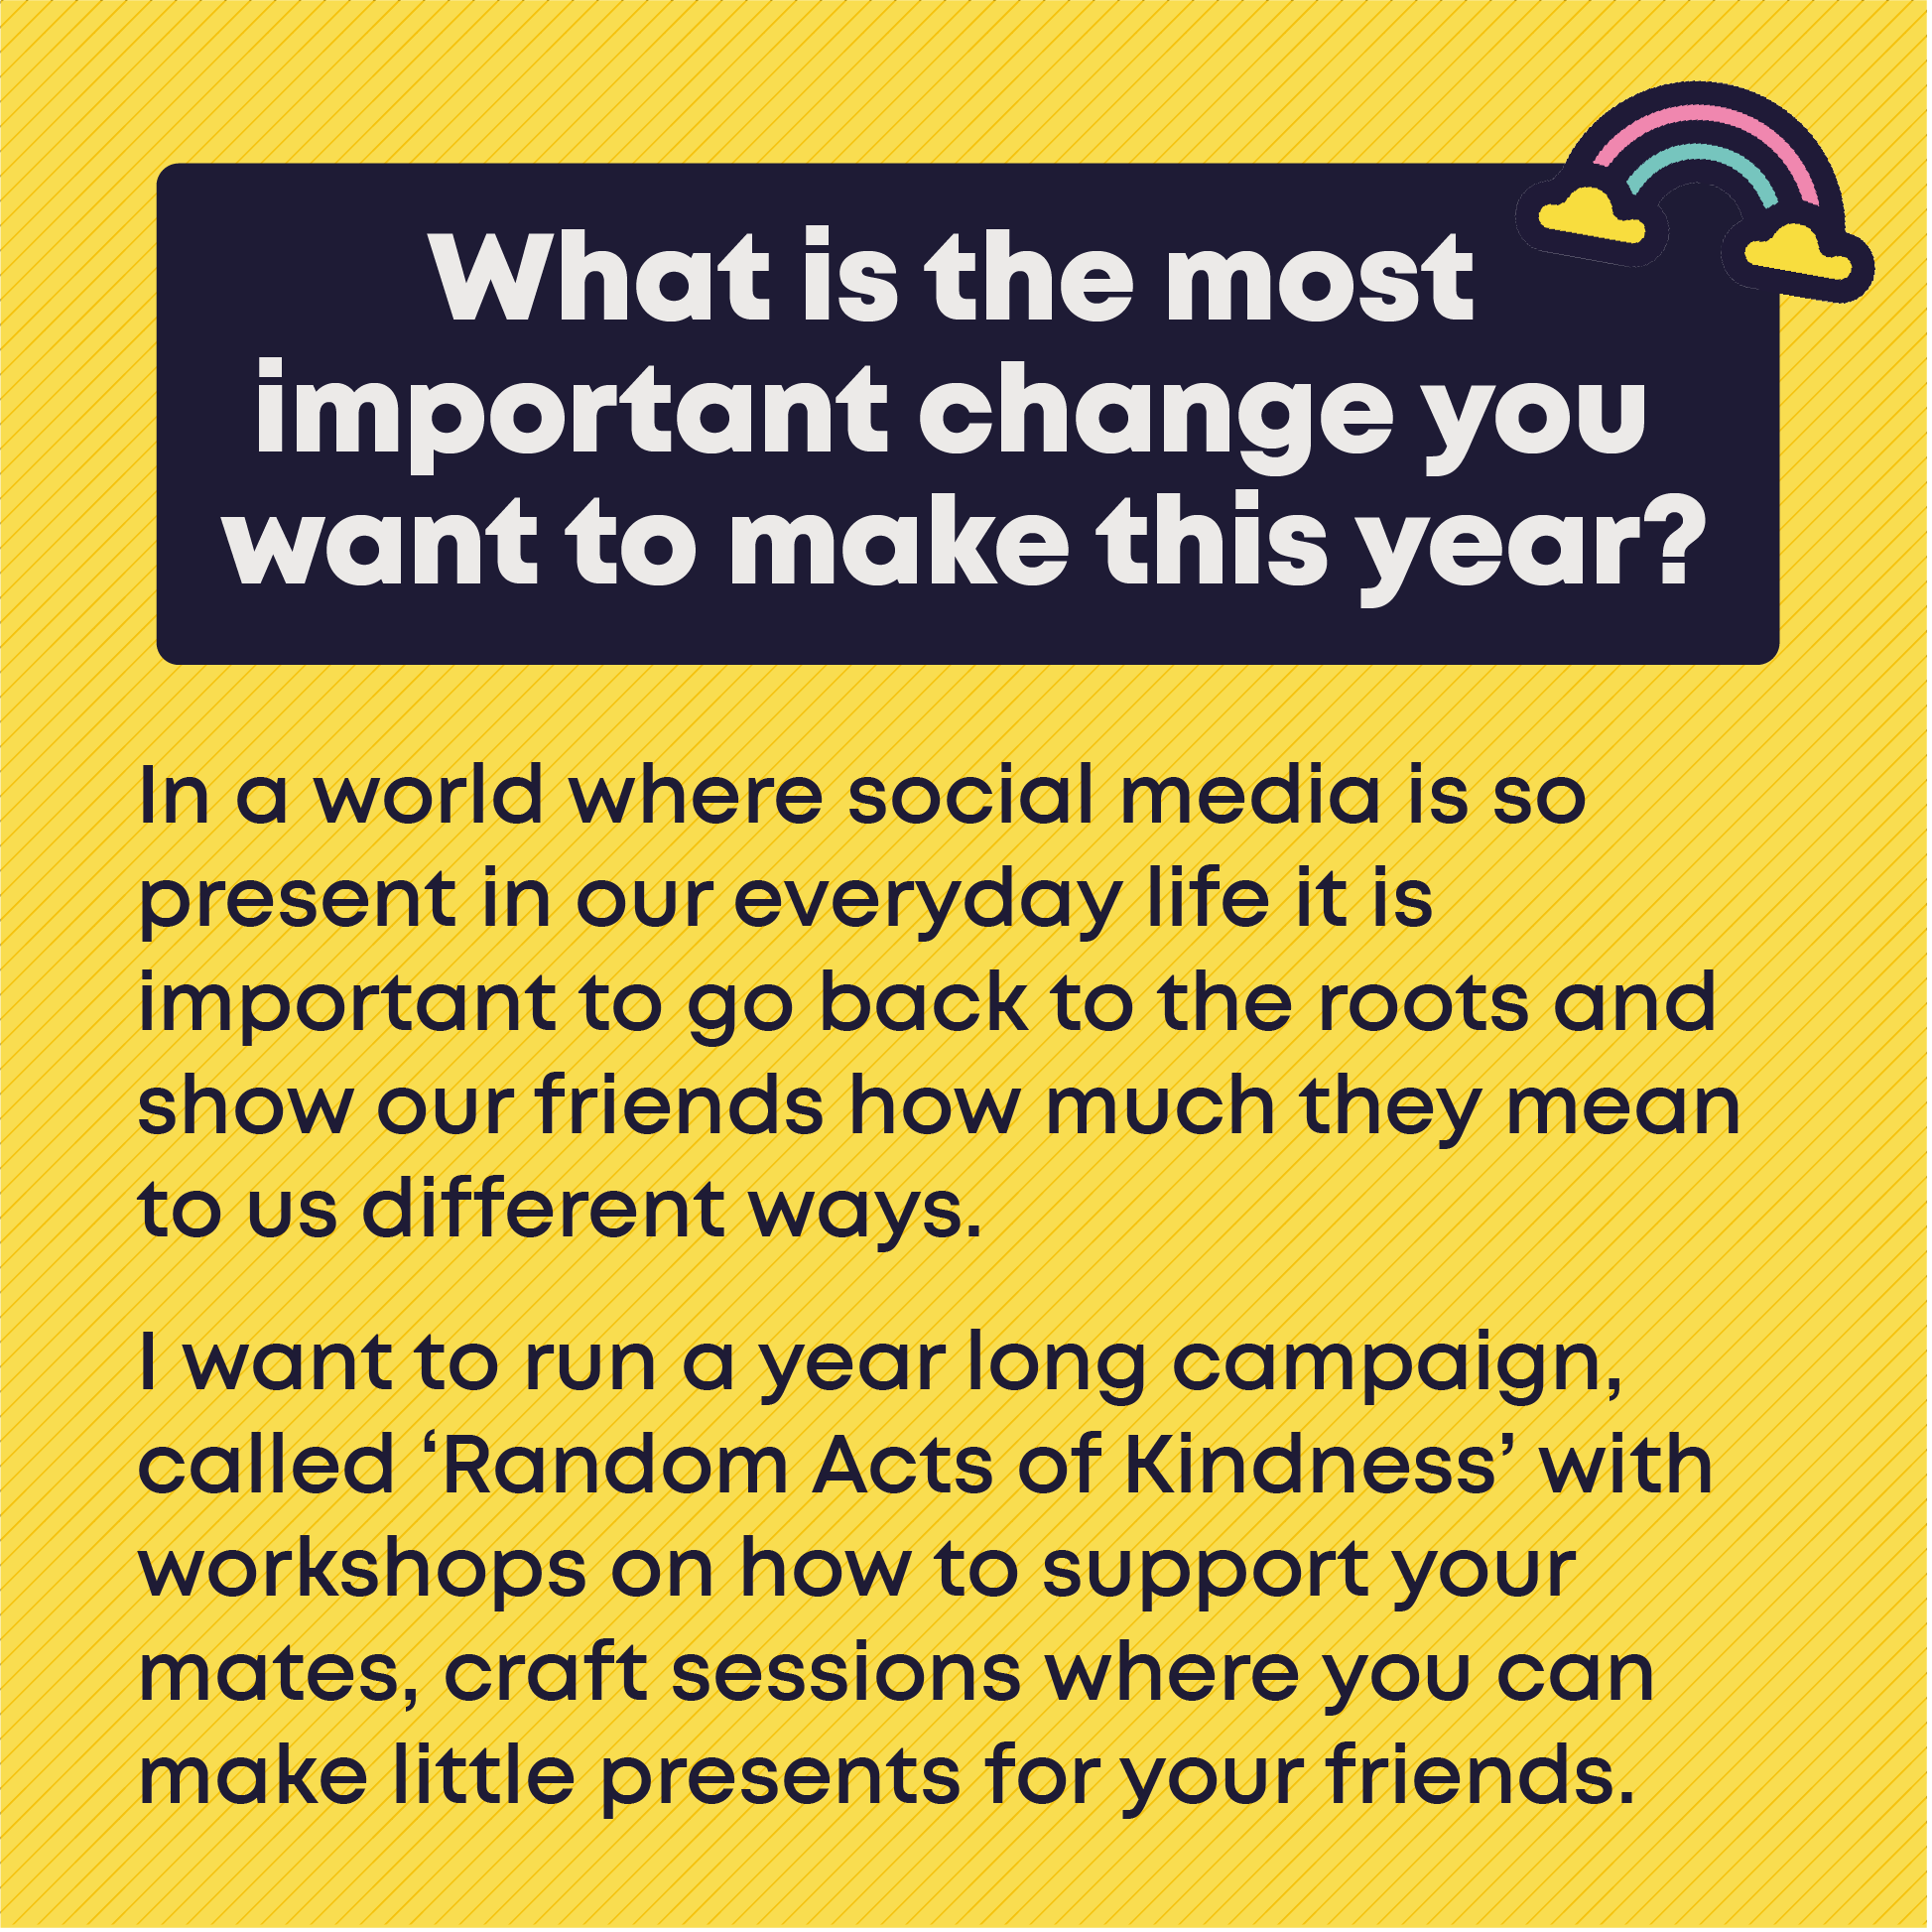 What is the most important change you want to make this year?In a world where social media is so present in our everyday life it is important to go back to the roots and show our friends how much they mean to us different ways.   I want to run a year long campaign, called 'Random Acts of Kindness' with workshops on how to support your mates, craft sessions where you can make little presents for your friends.